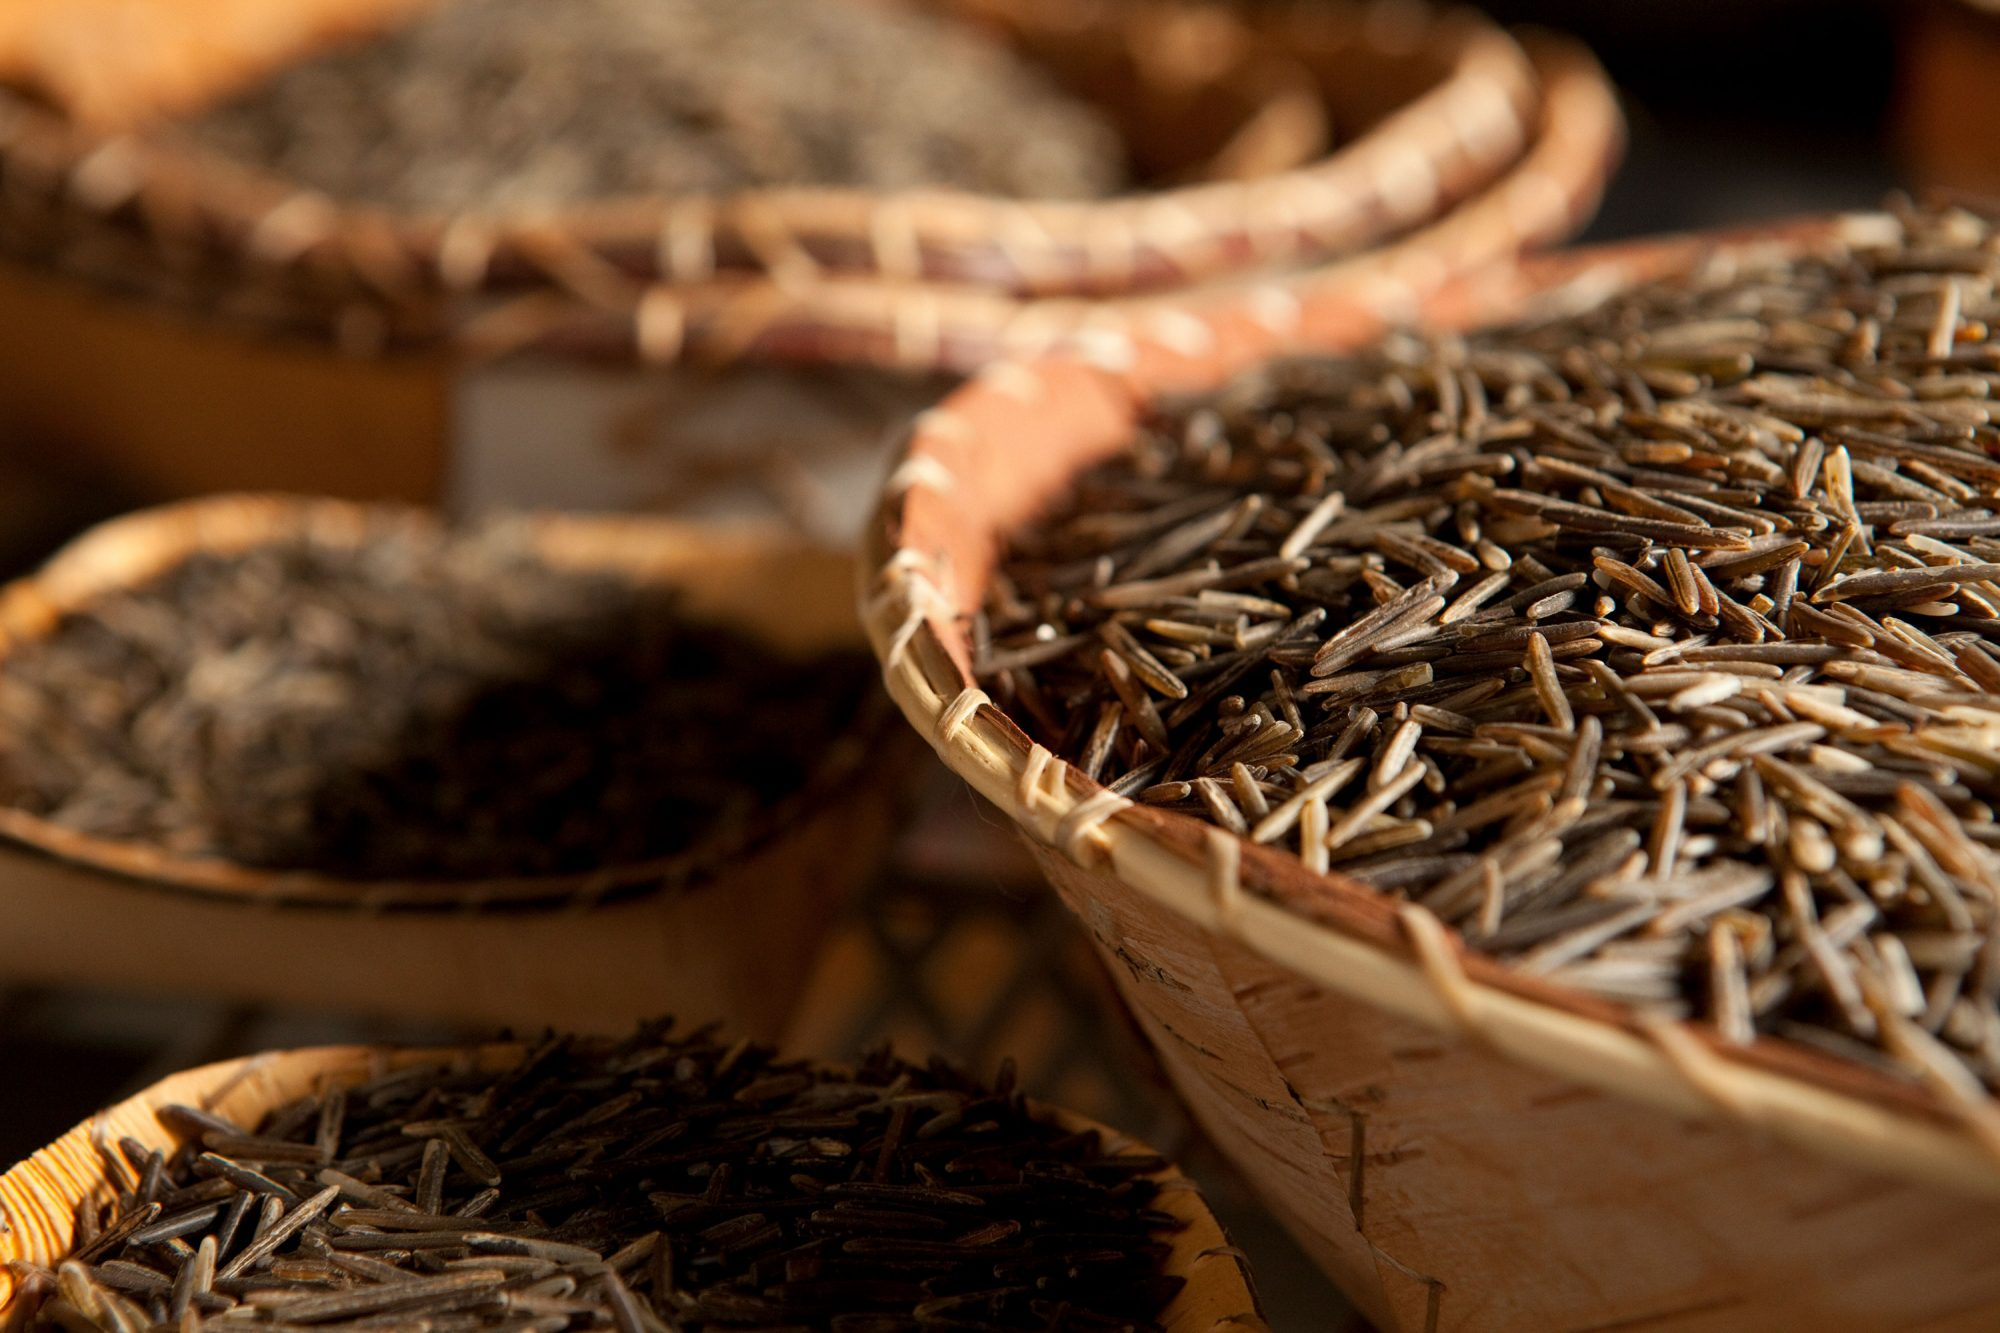 Uncooked wild rice in woven basket